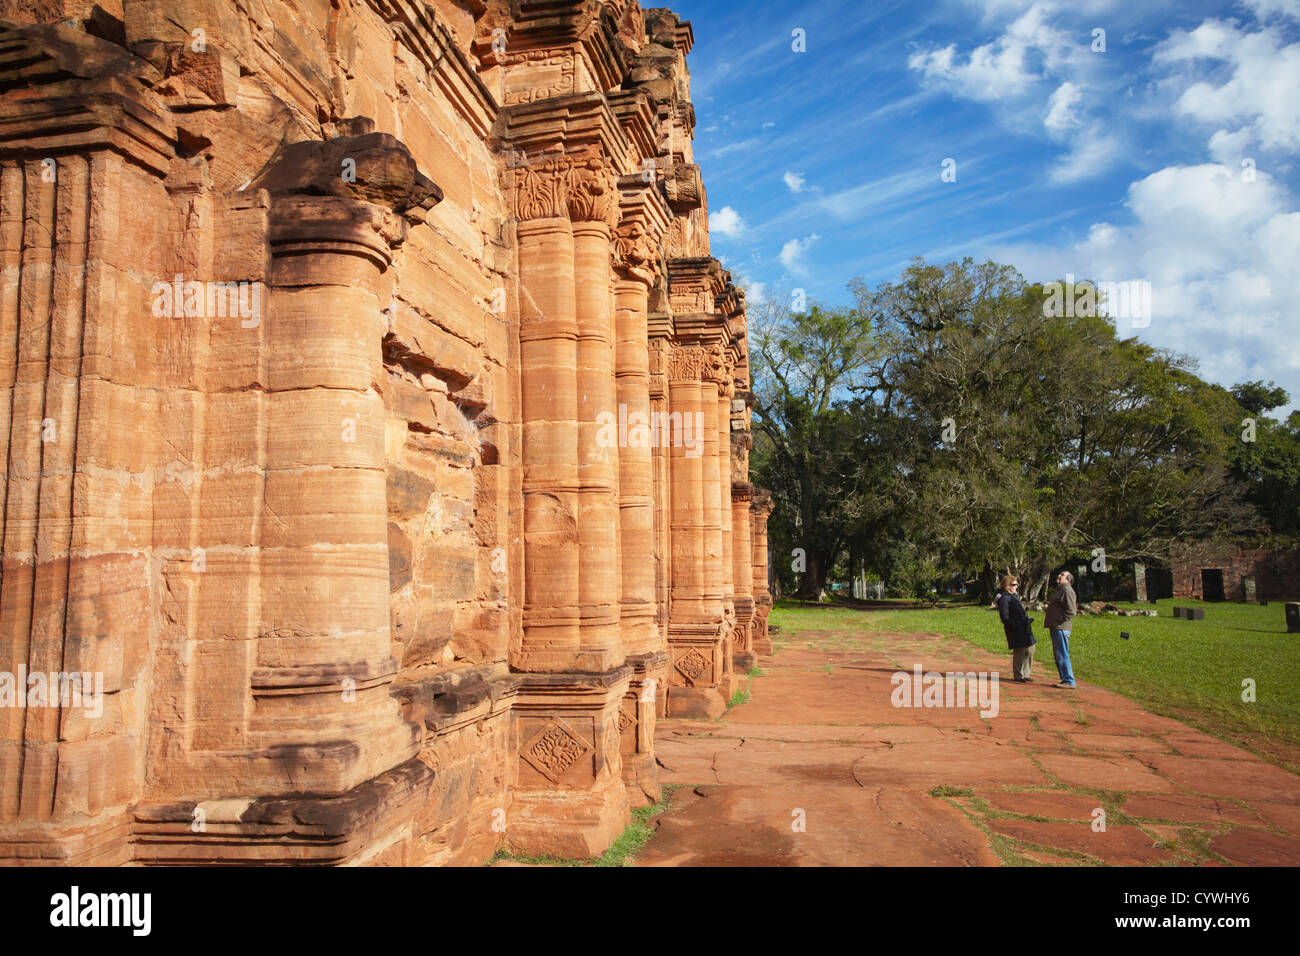 Tourists at ruins of mission at San Ignacio Mini (UNESCO World Heritage Site), Misiones, Argentina - Stock Image